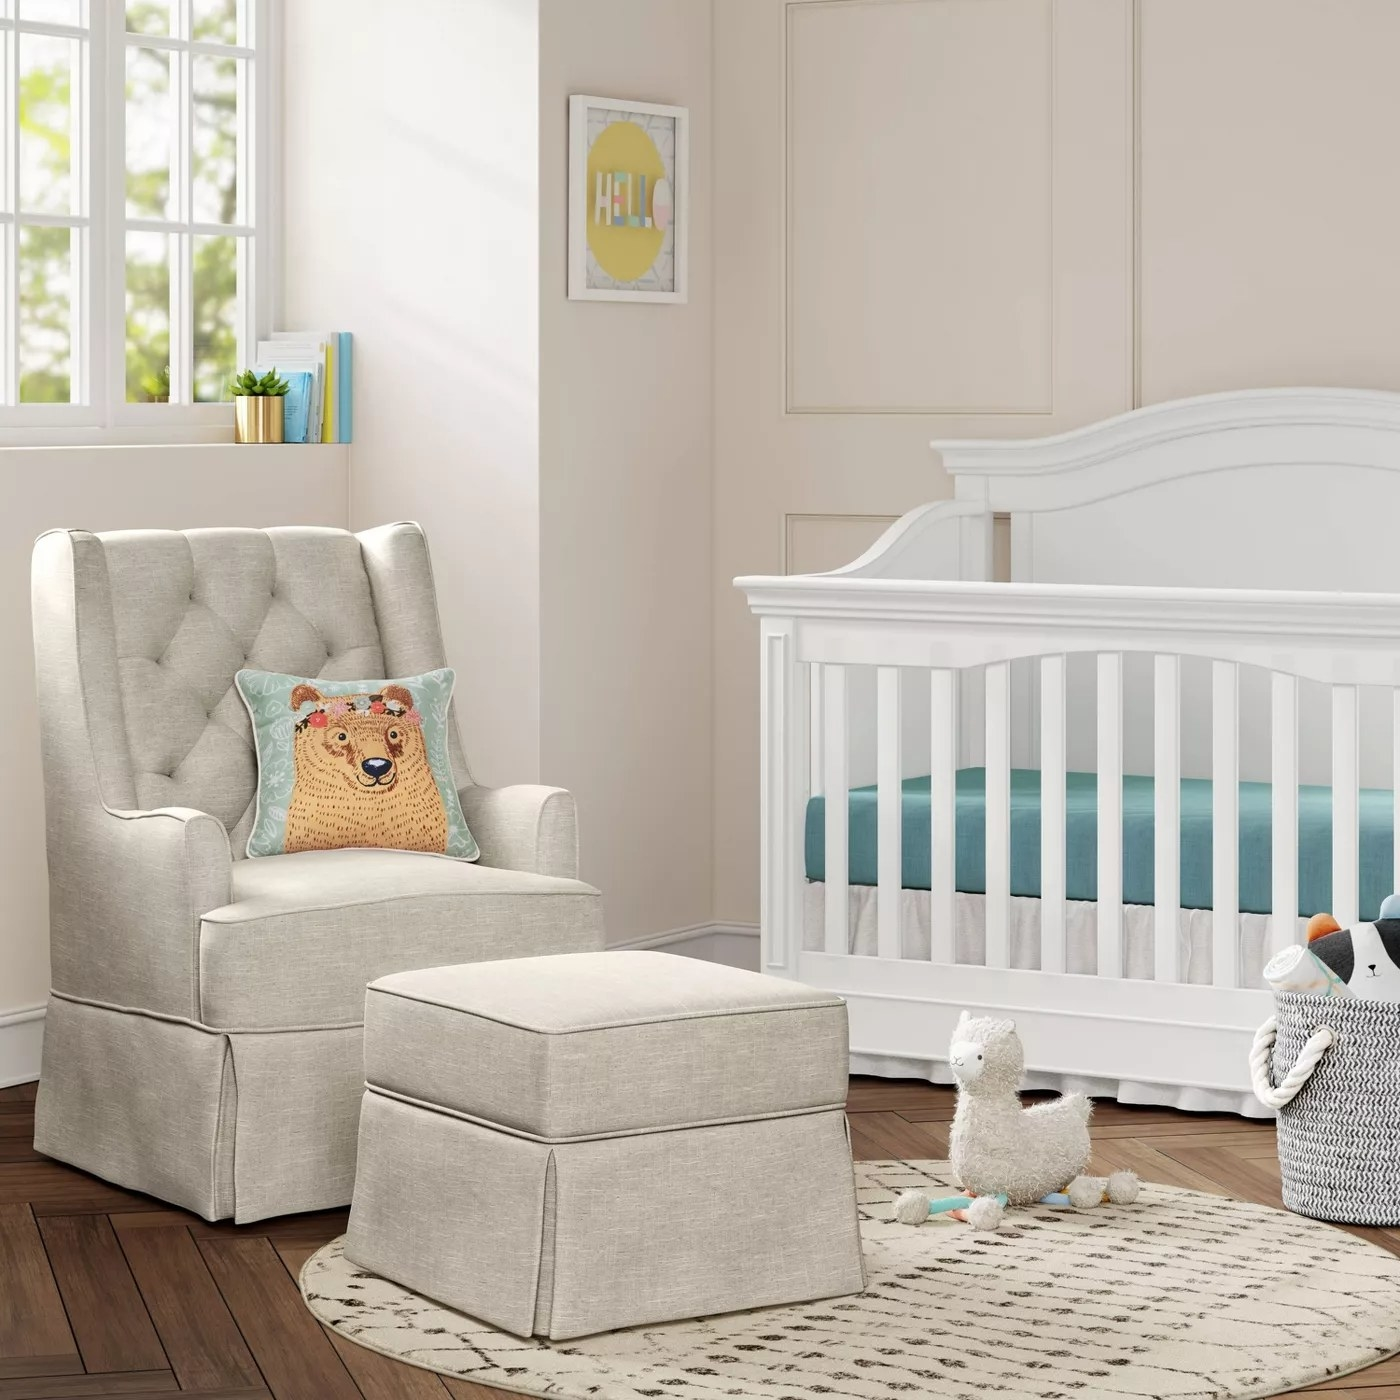 The tufted beige glider with the matching ottoman in front of it in a nursery